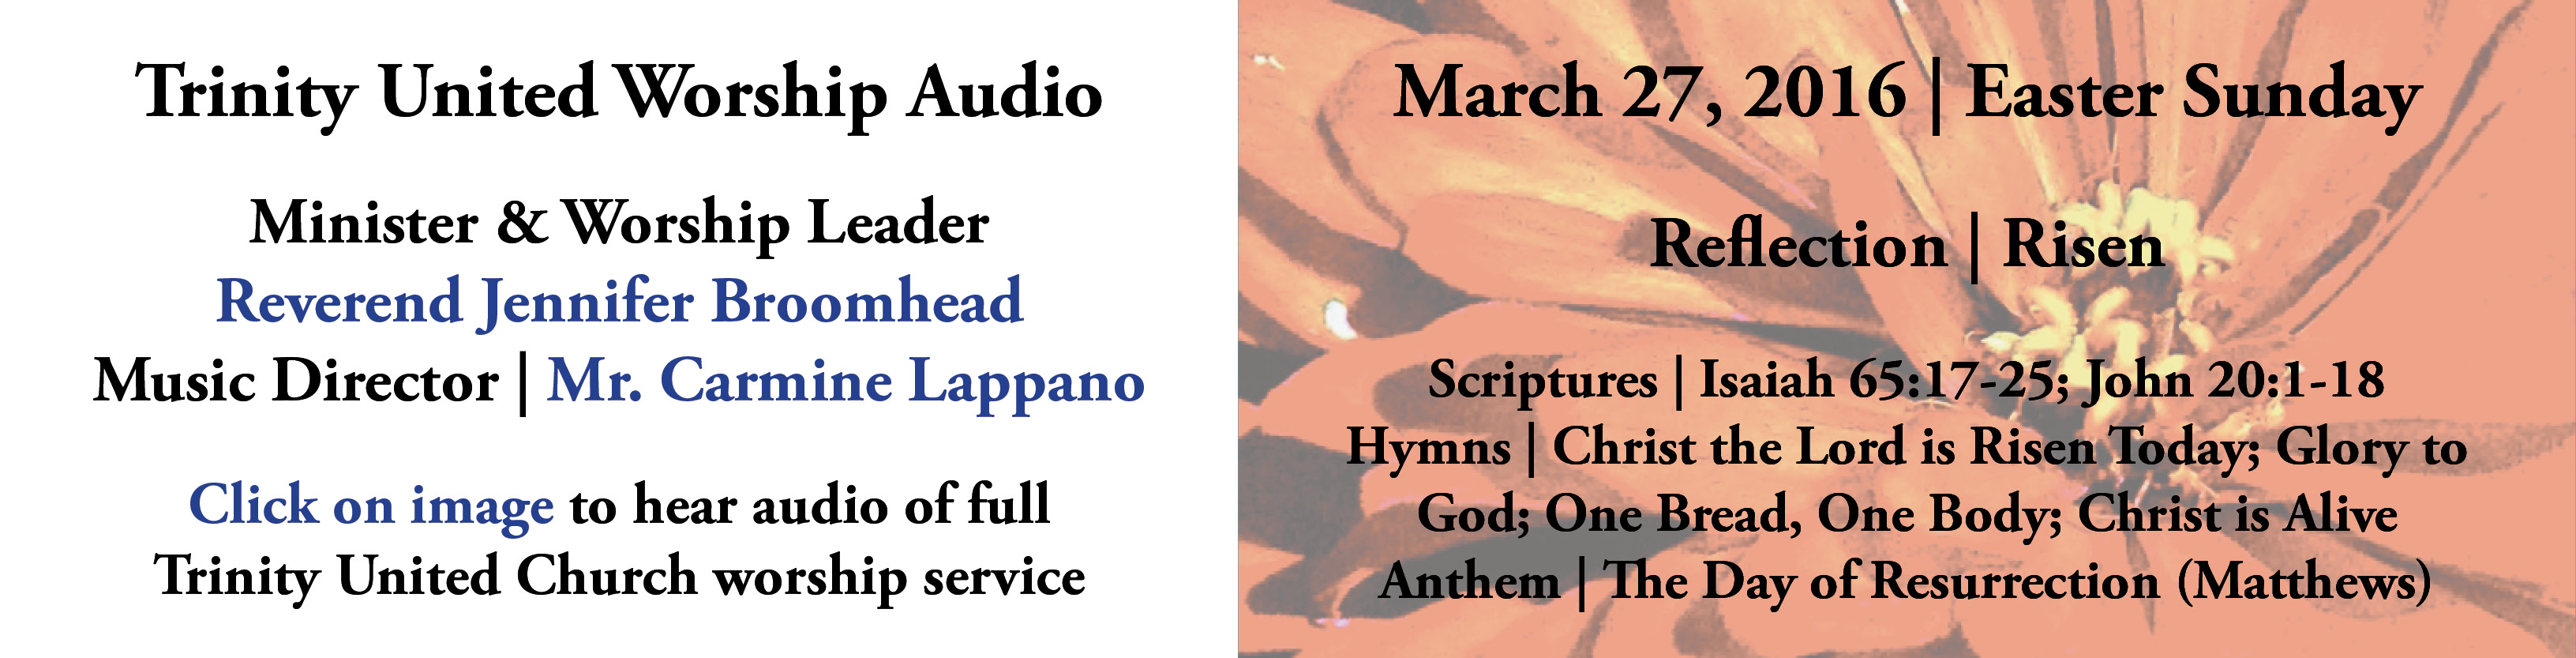 Trinity United Worship Audio | March 27, 2016 | Easter Sunday